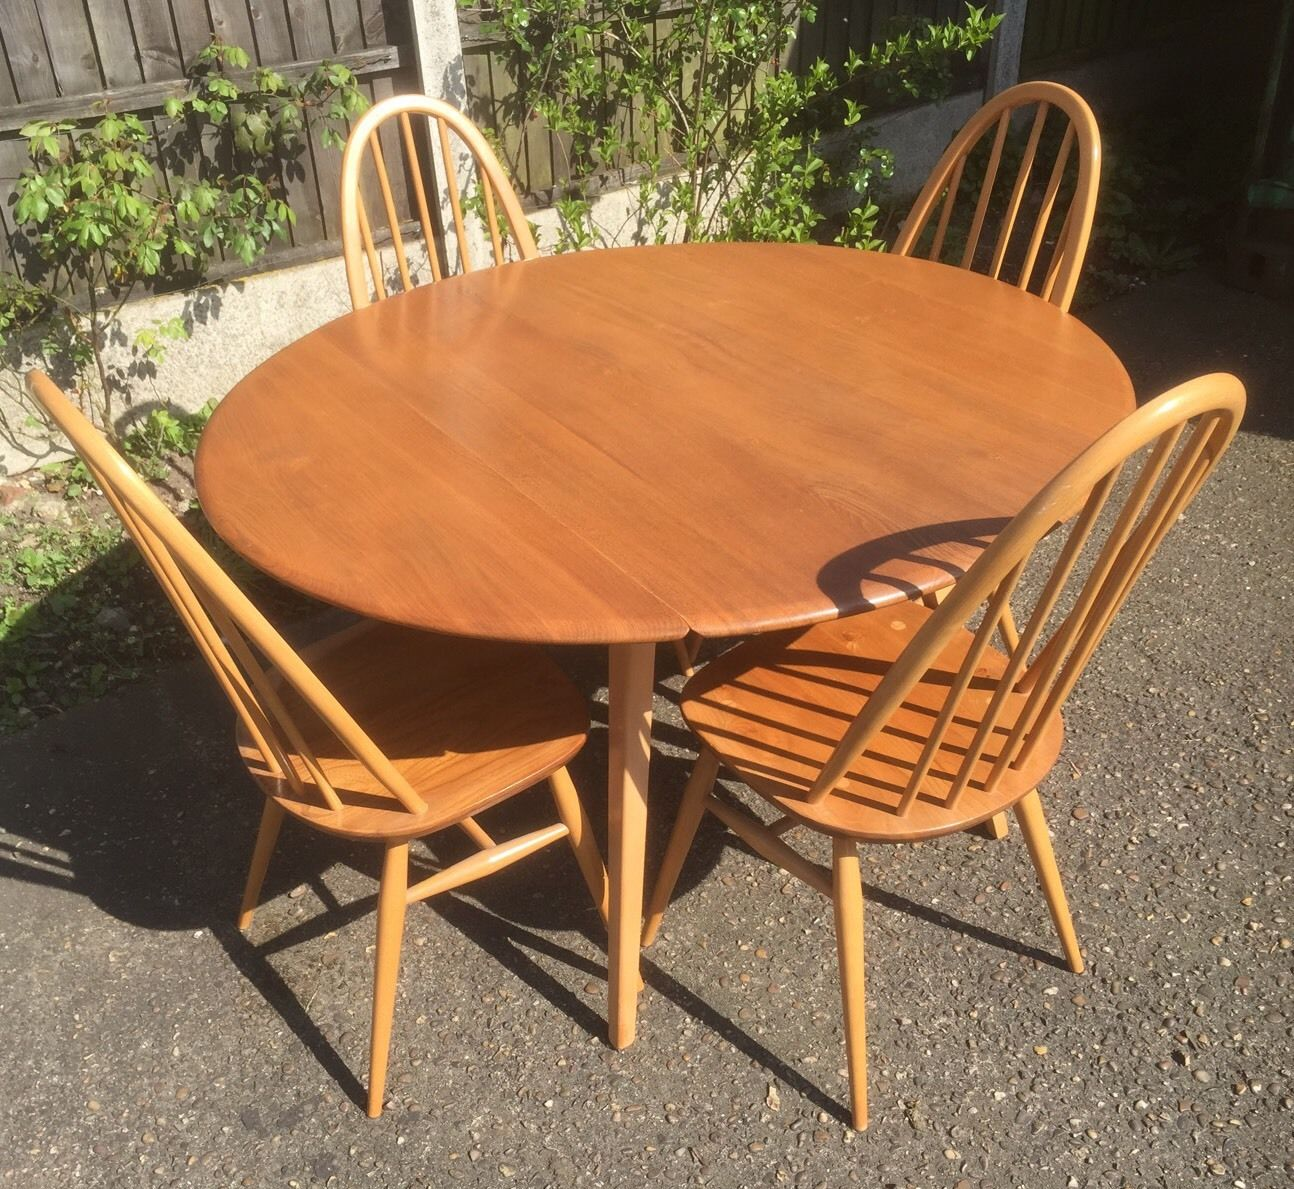 Superb retro ercol extending dining table 4 matching chairs superb retro ercol extending dining table 4 matching watchthetrailerfo